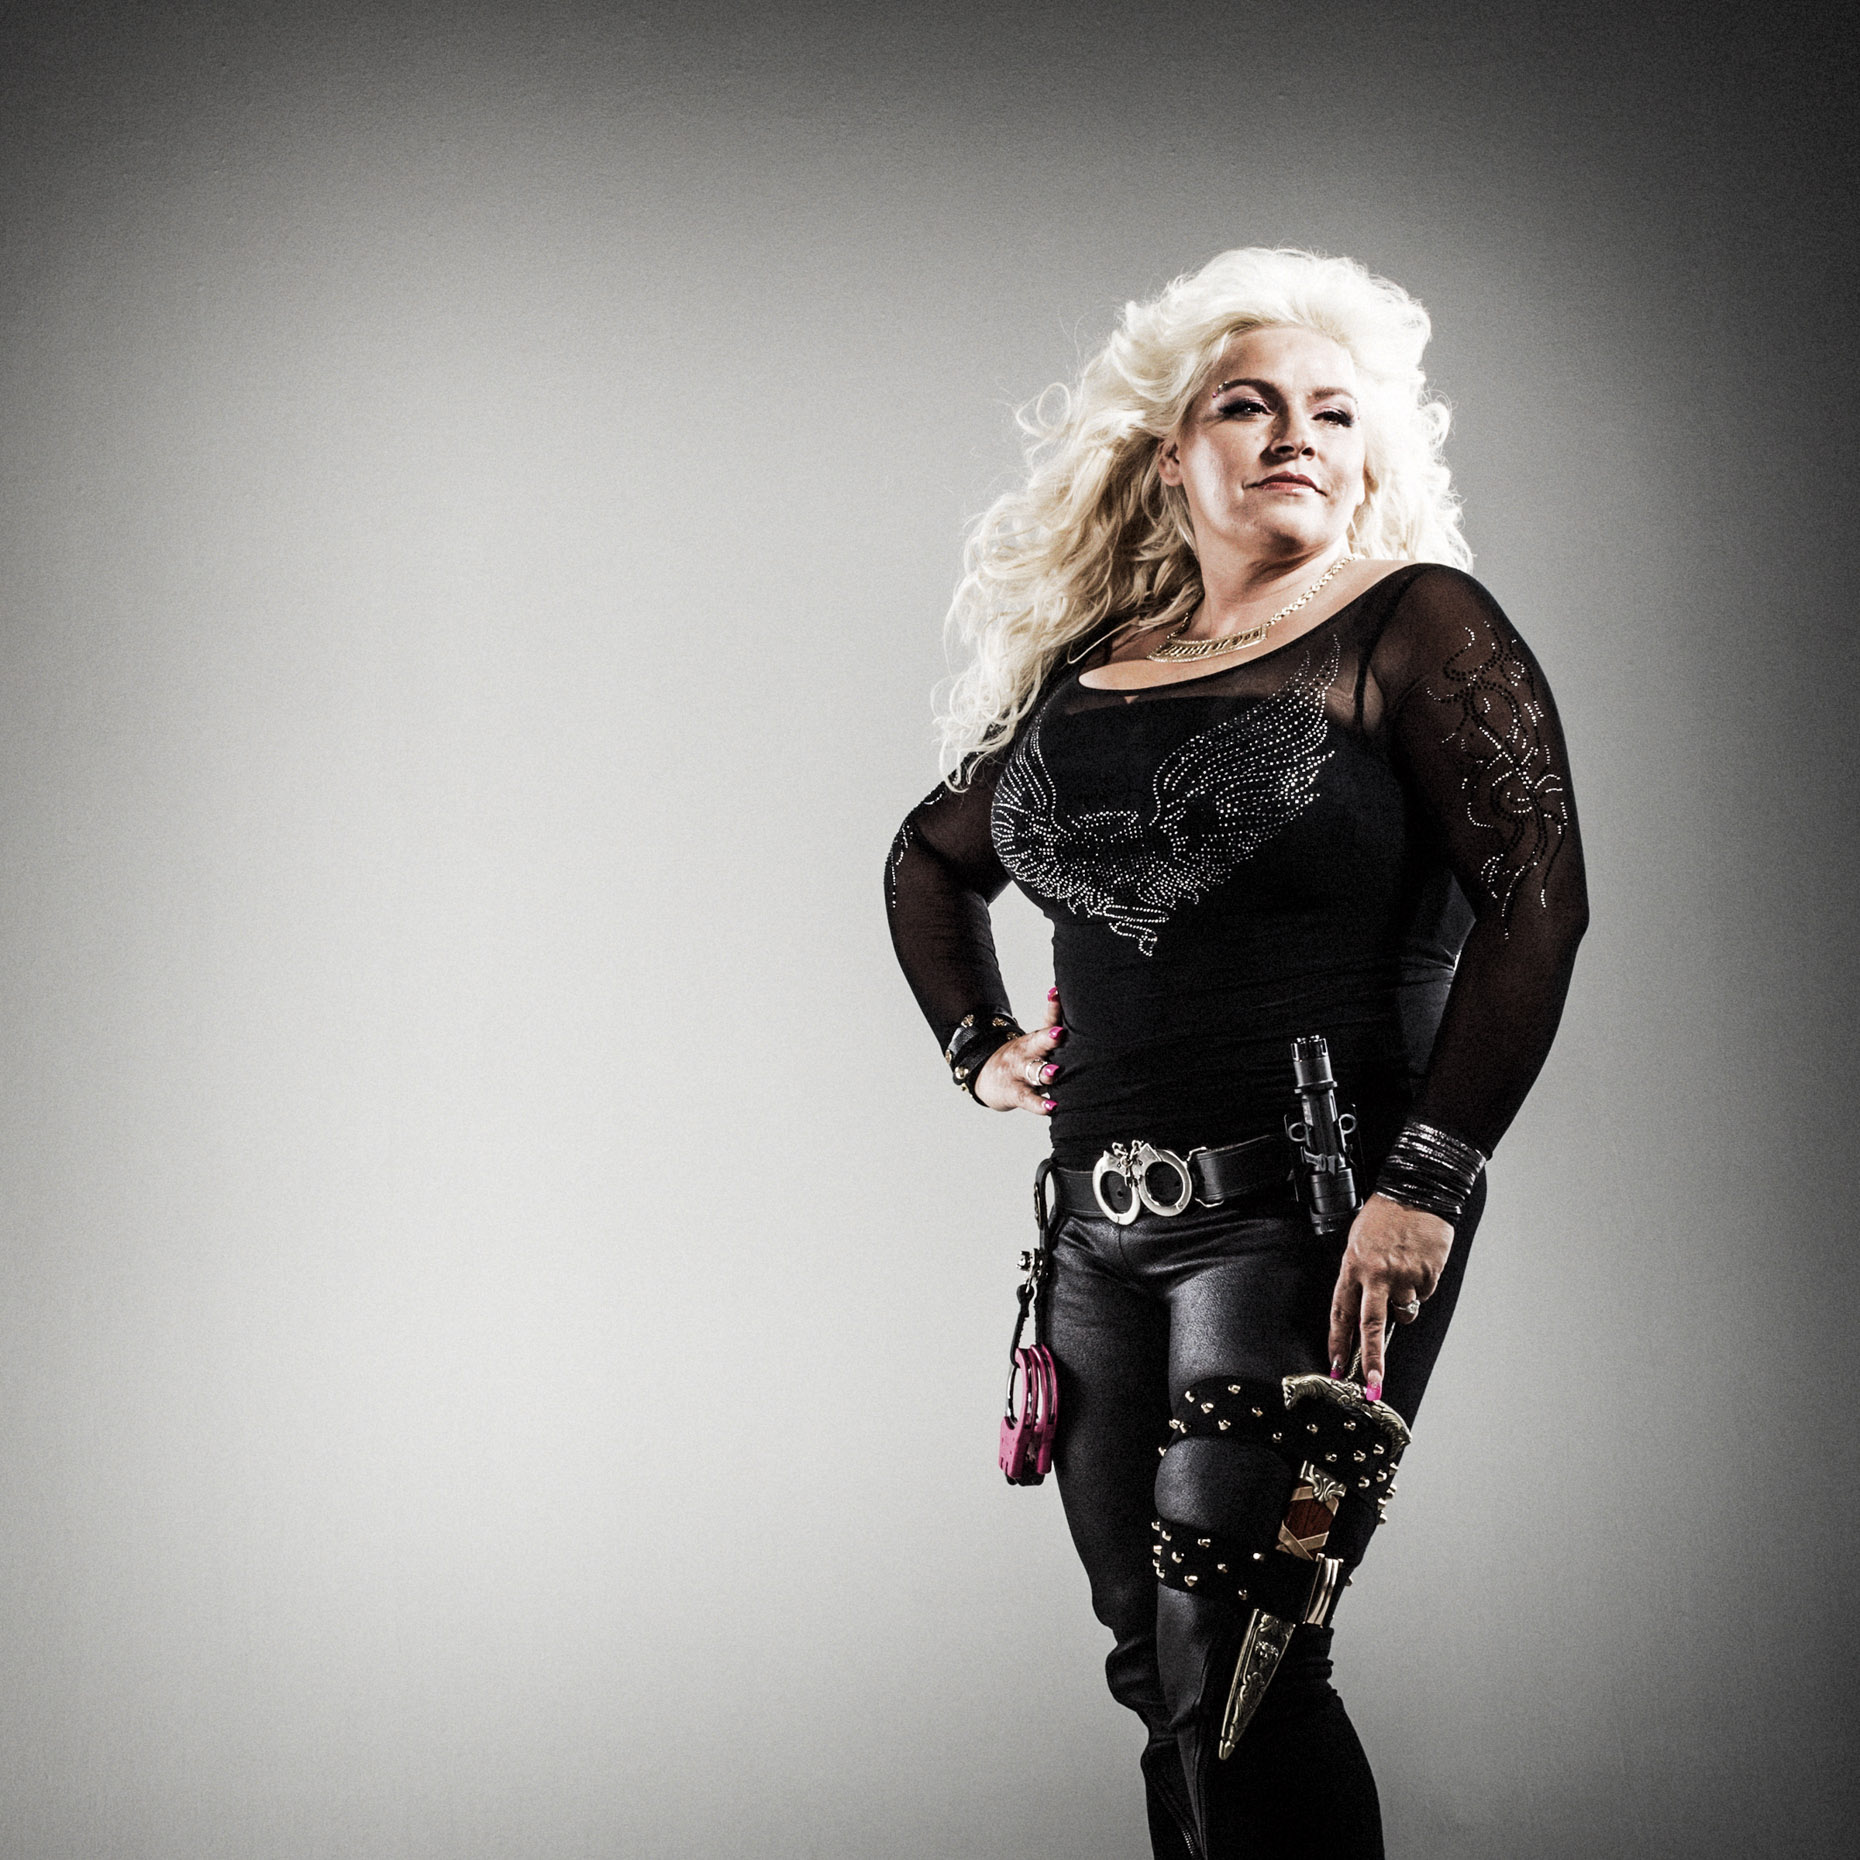 reality tv star Beth Chapman for Dog and Beth: On the Hunt on CMT network